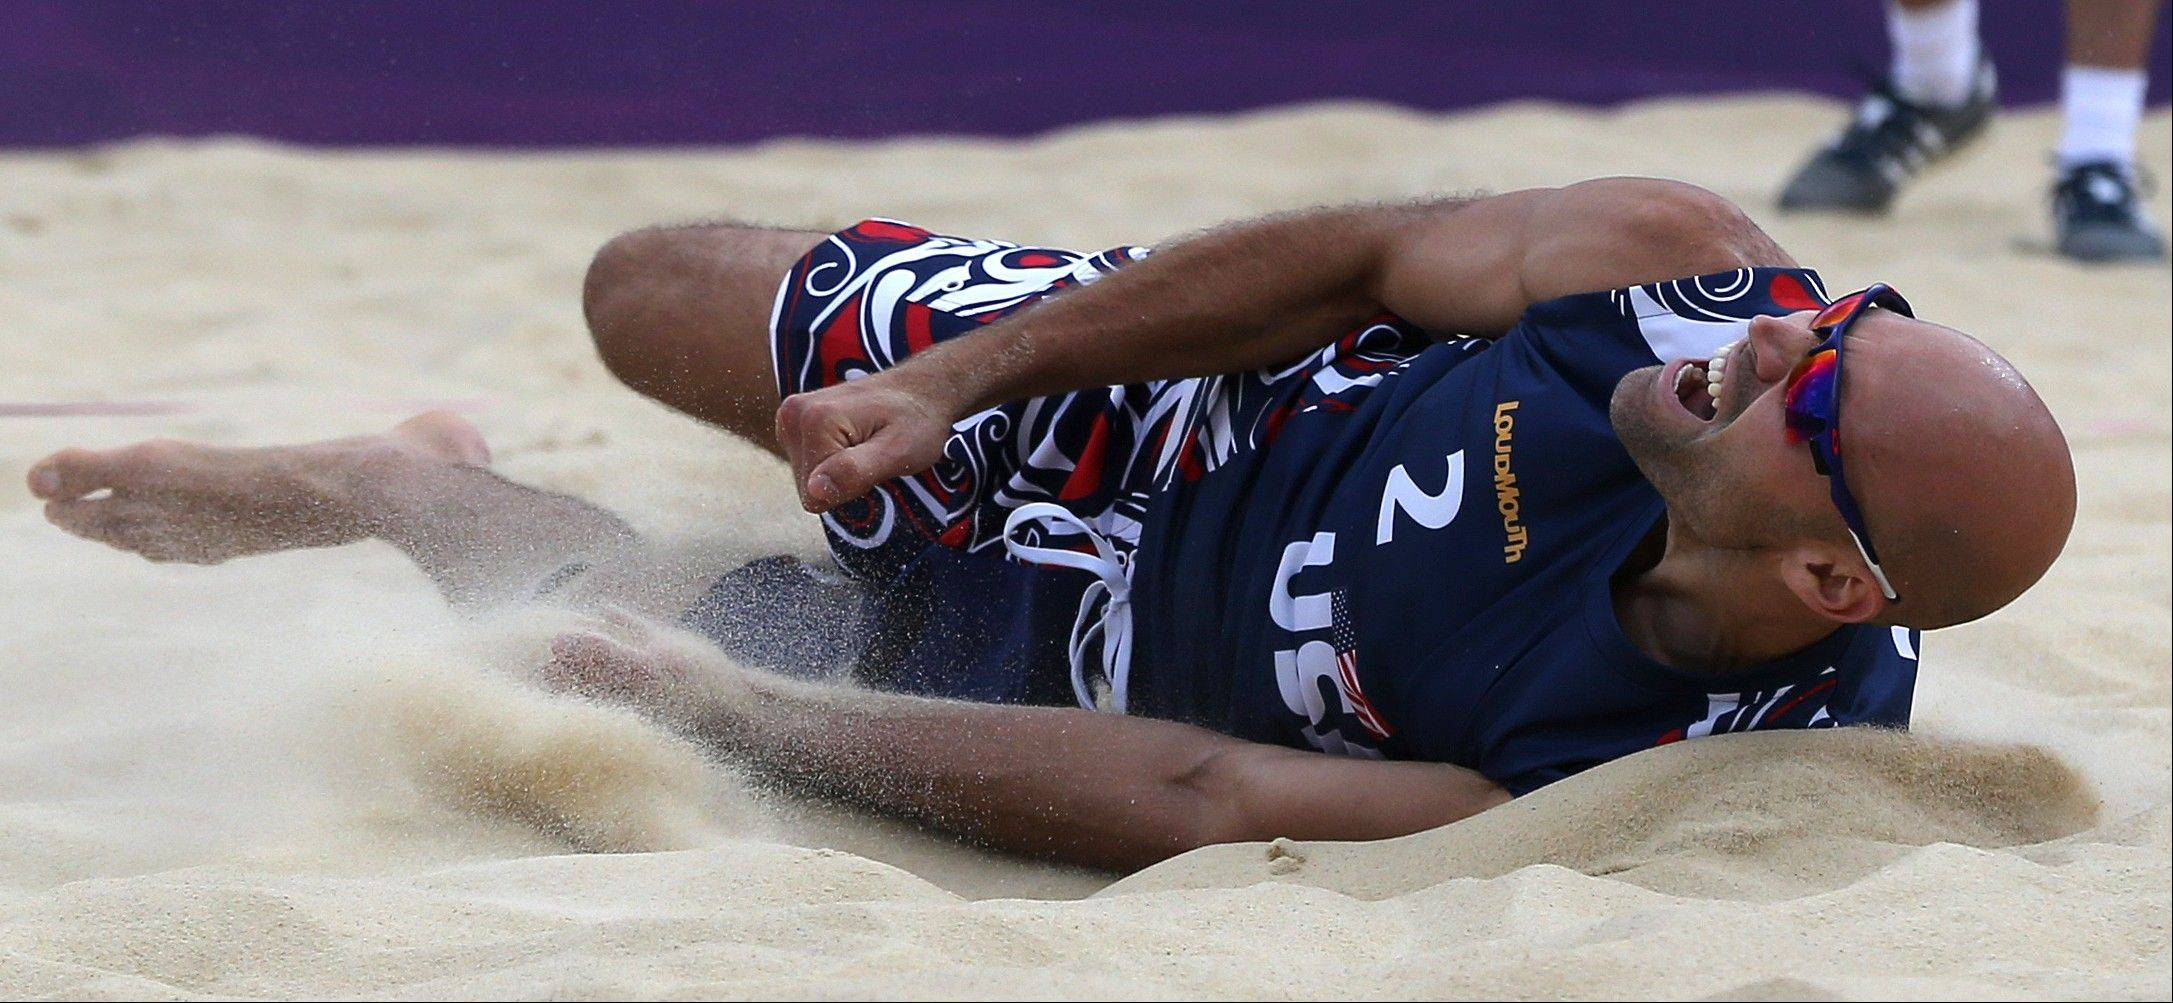 Phil Dalhausser dives into Friday sand during a Beach Volleyball match Against Italy at the 2012 Summer Olympics.